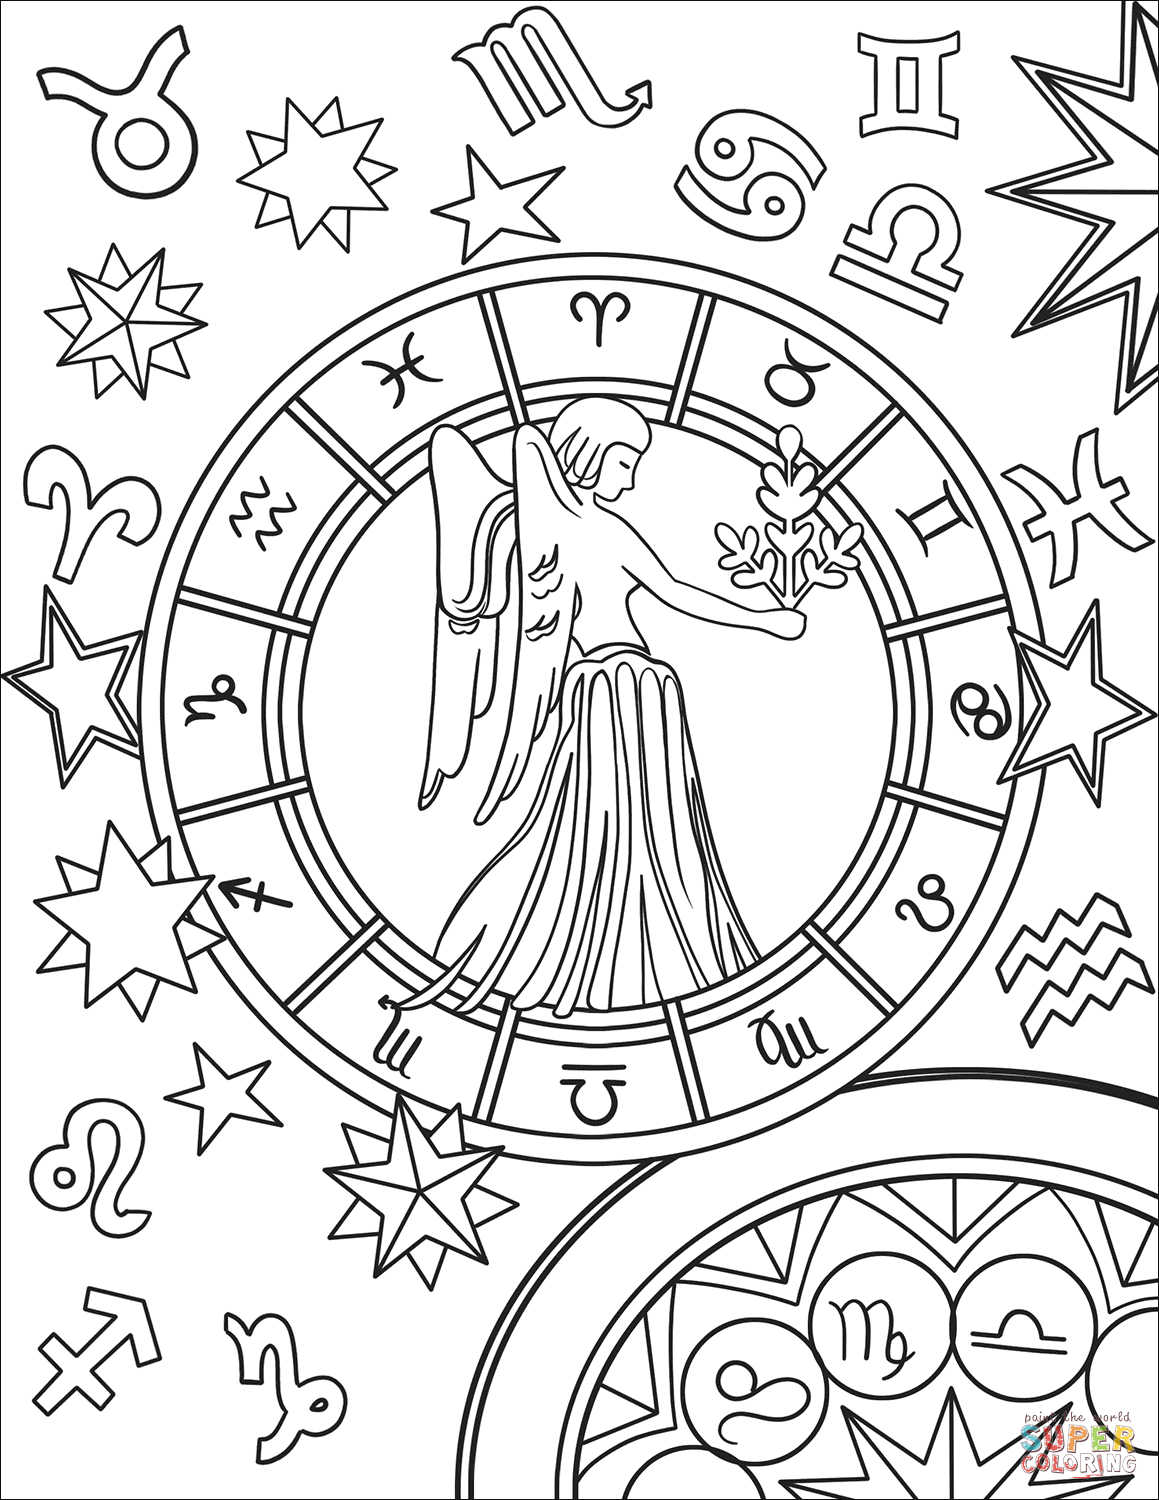 Virgo Zodiac Sign Coloring Page Free Printable Coloring Pages